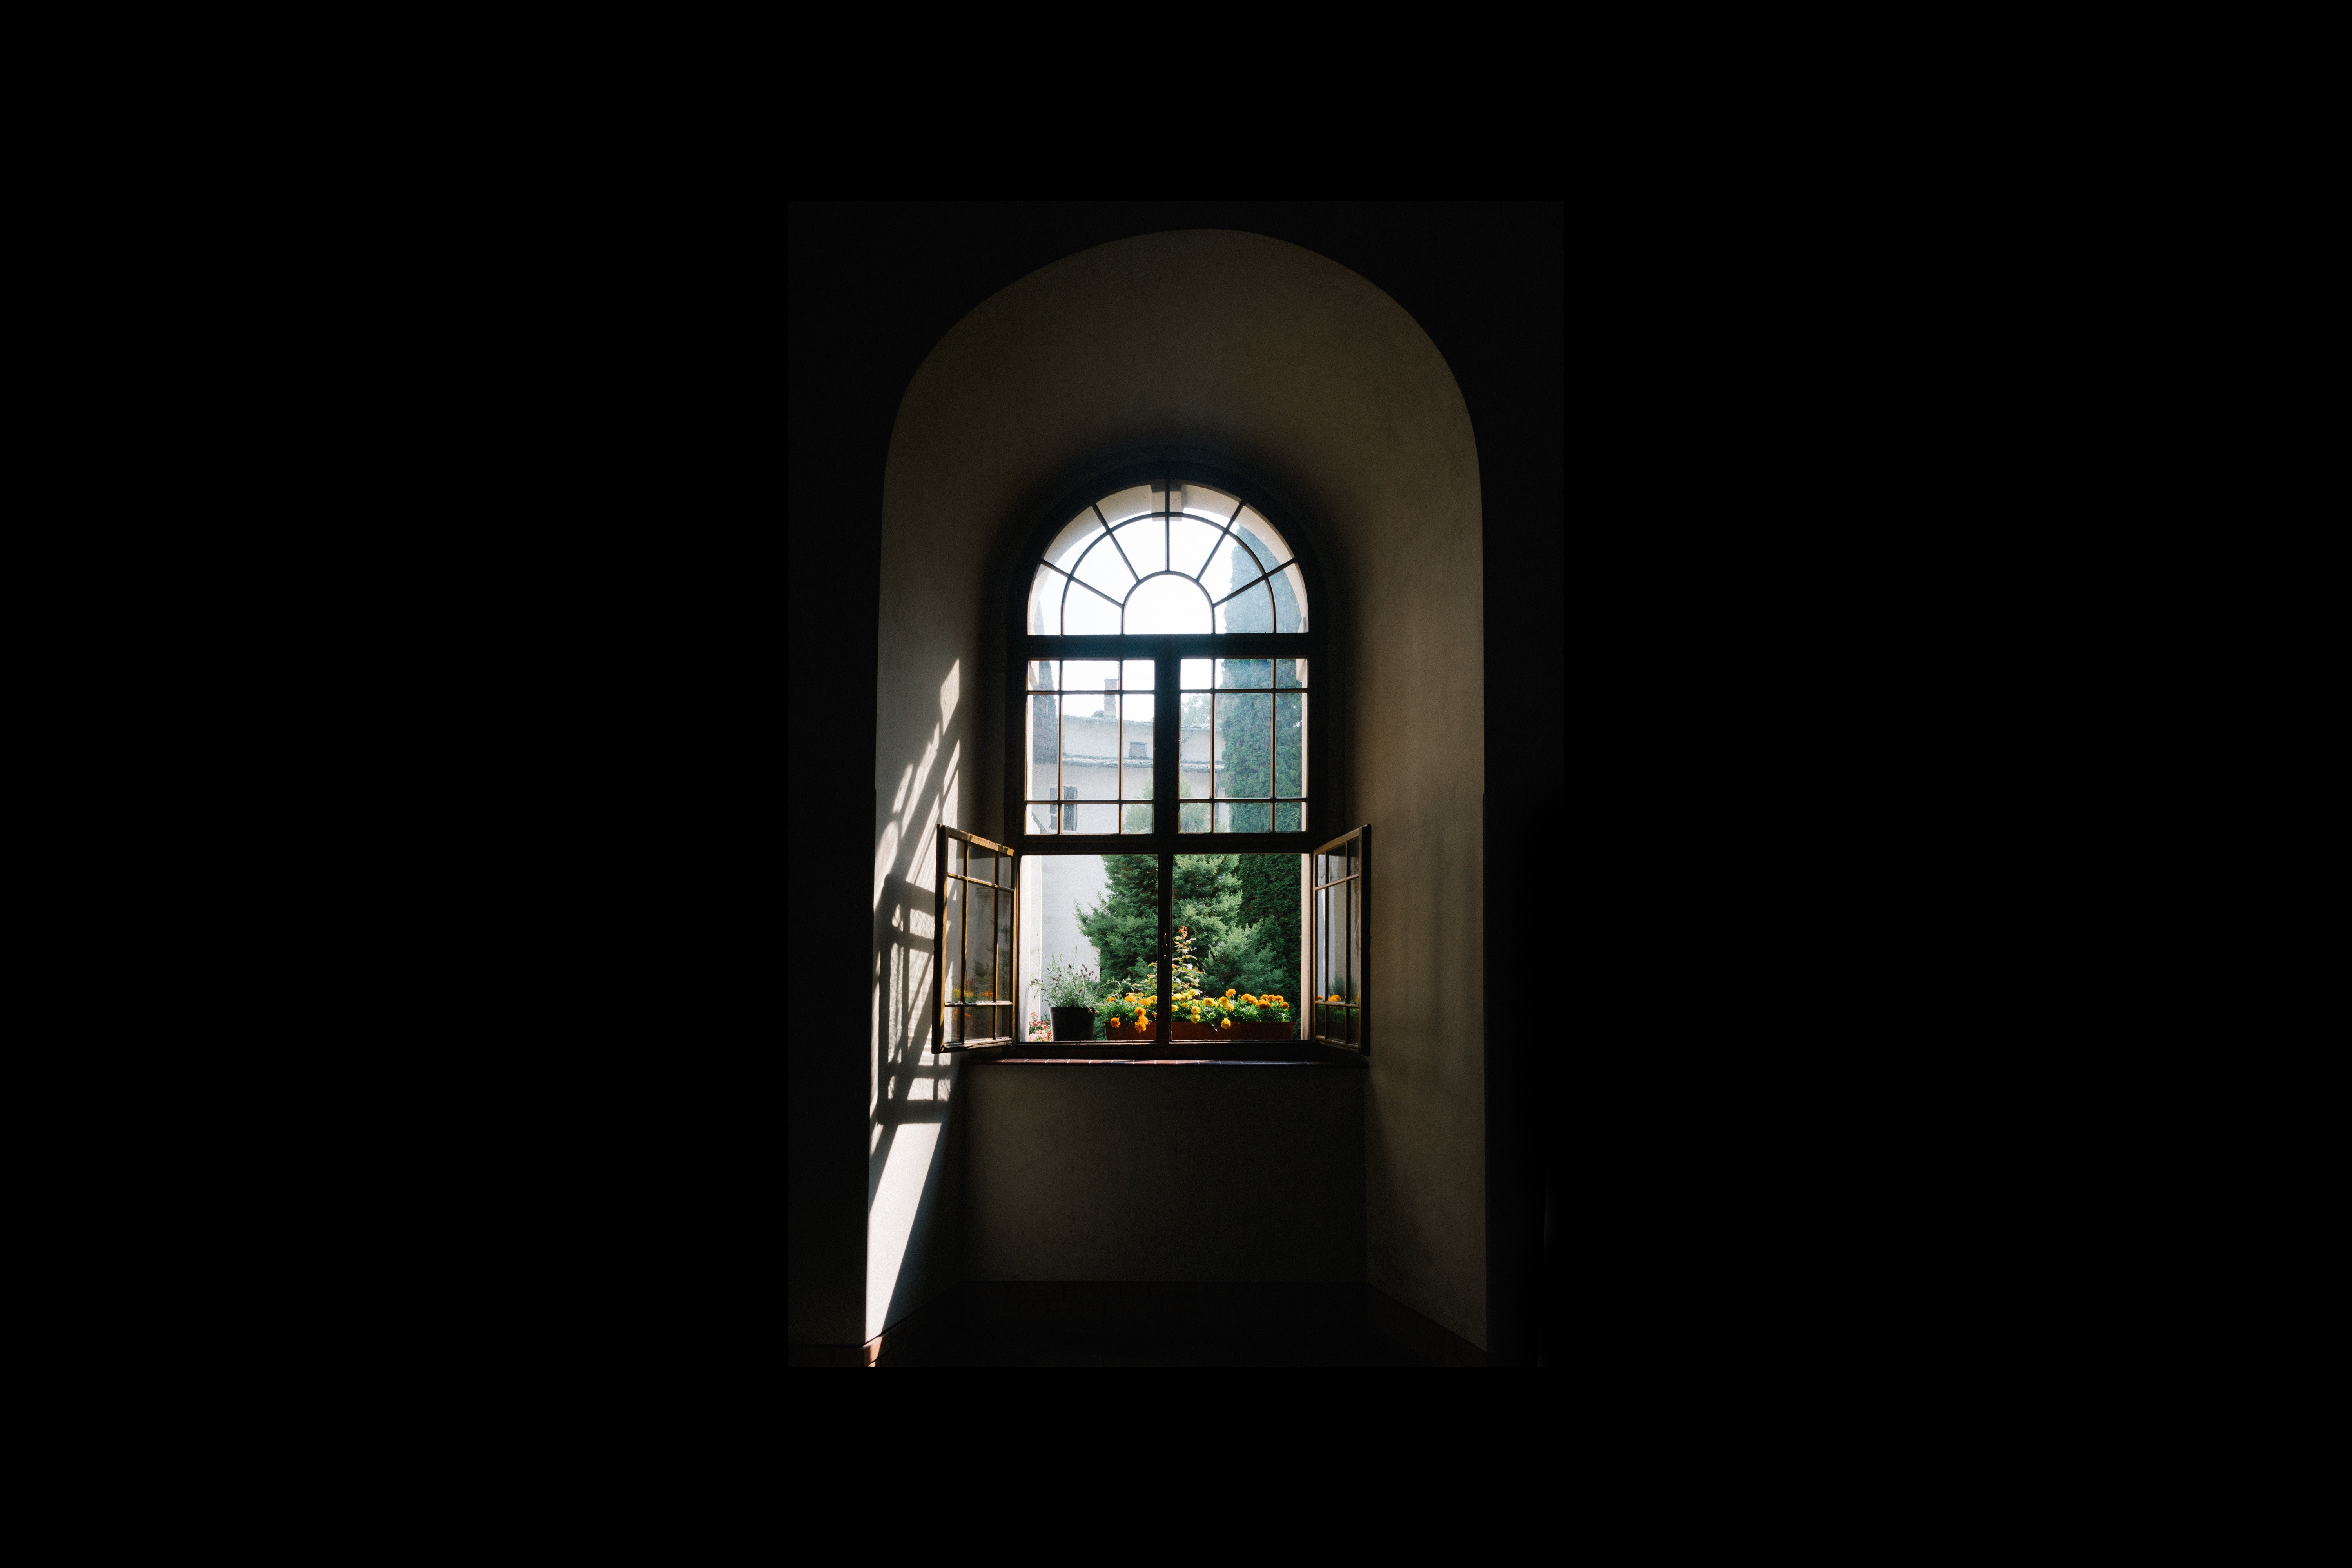 Sunlight streams through a rounded window.